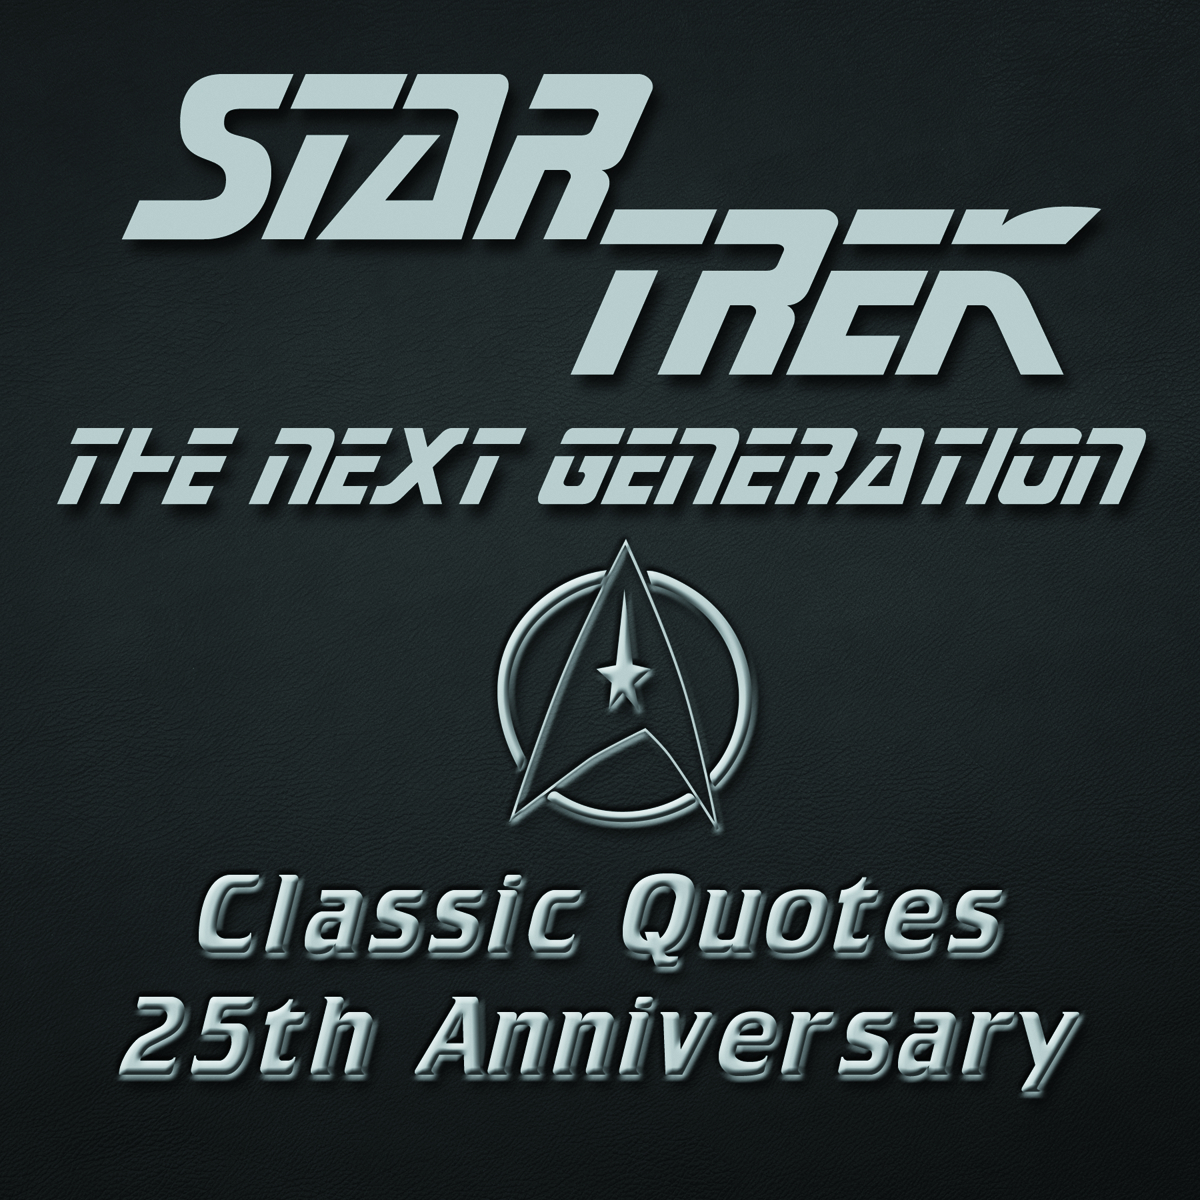 Classic Quotes Dec121400  Star Trek Classic Quotes Next Generation Hc  Previews